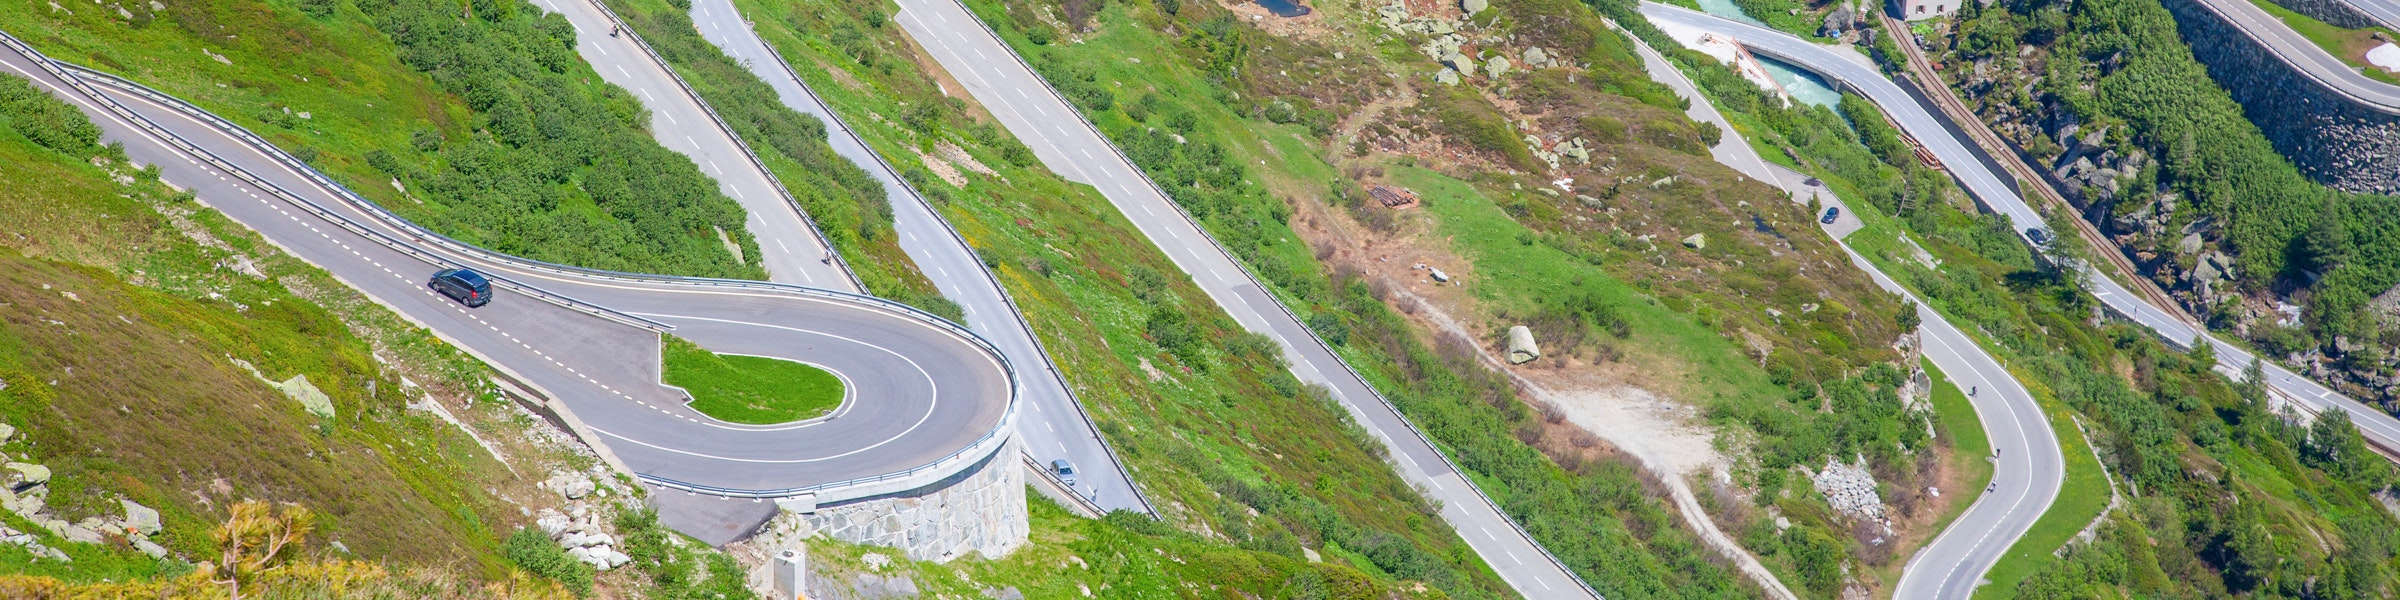 Furka and Grimsel Pass